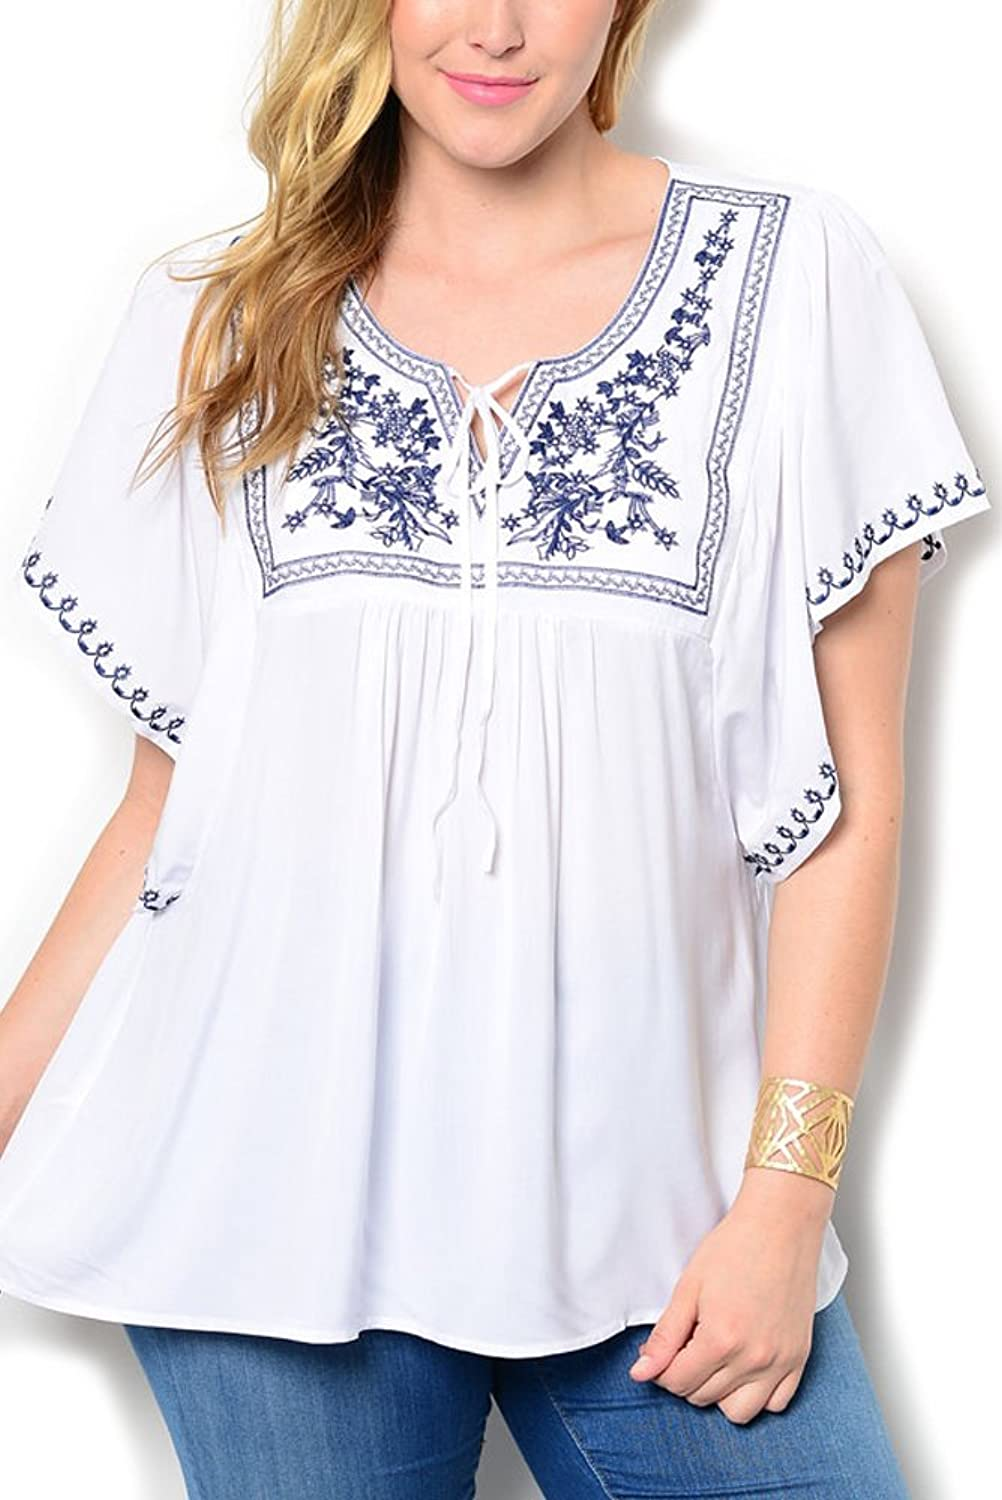 DHStyles Women's Plus Size Boho Chic Embroidered Flowy Top брошь boho chic брошь